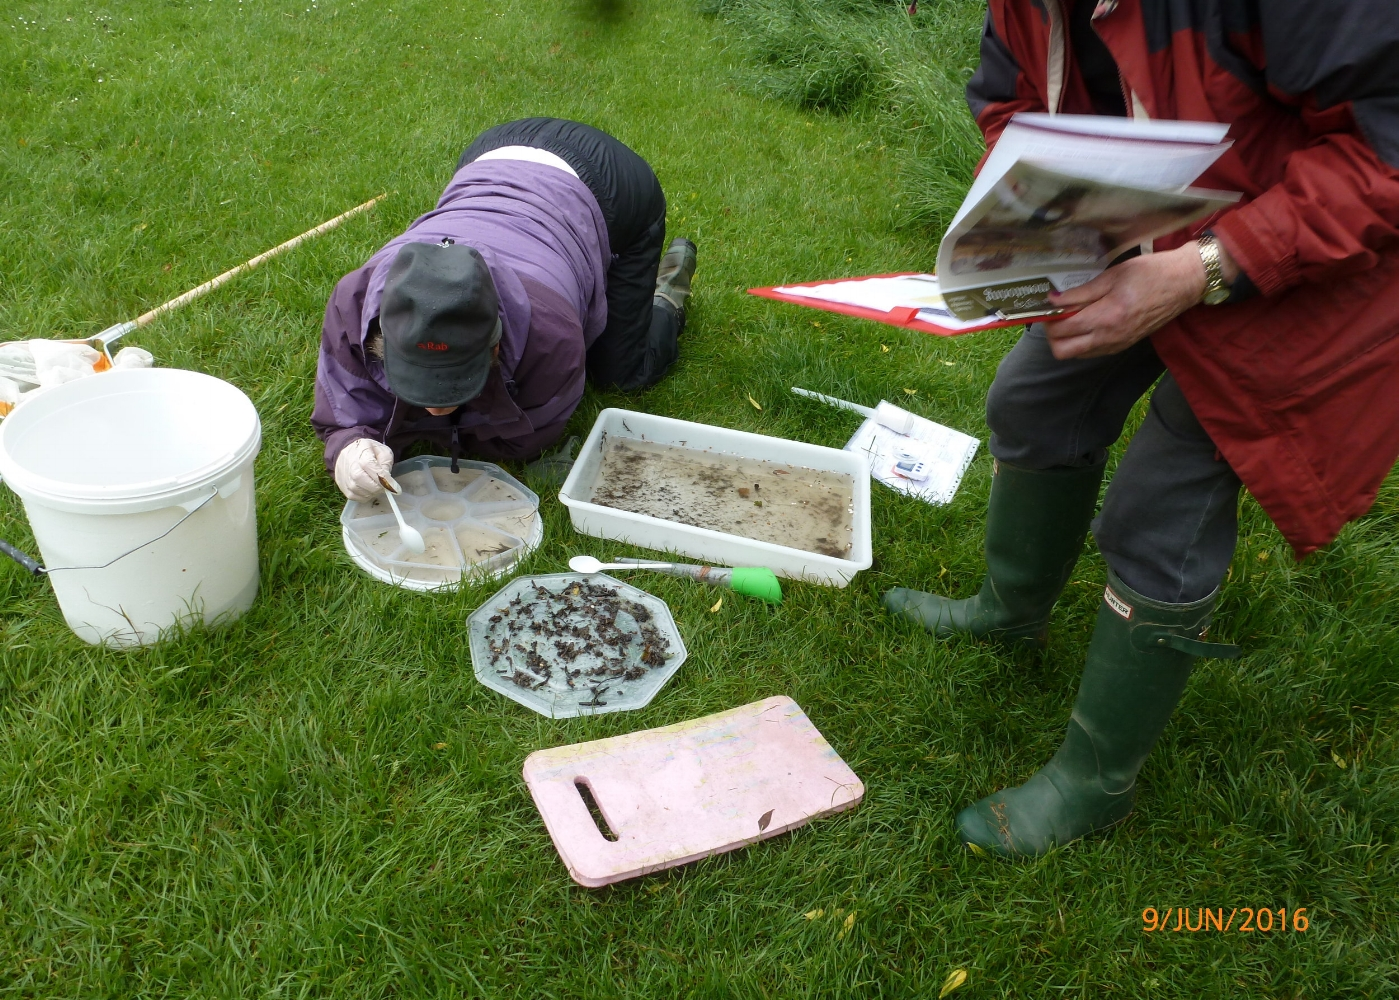 River_Lab_River_Fly_training_at_Bluebell_Beck_June_2016.jpg